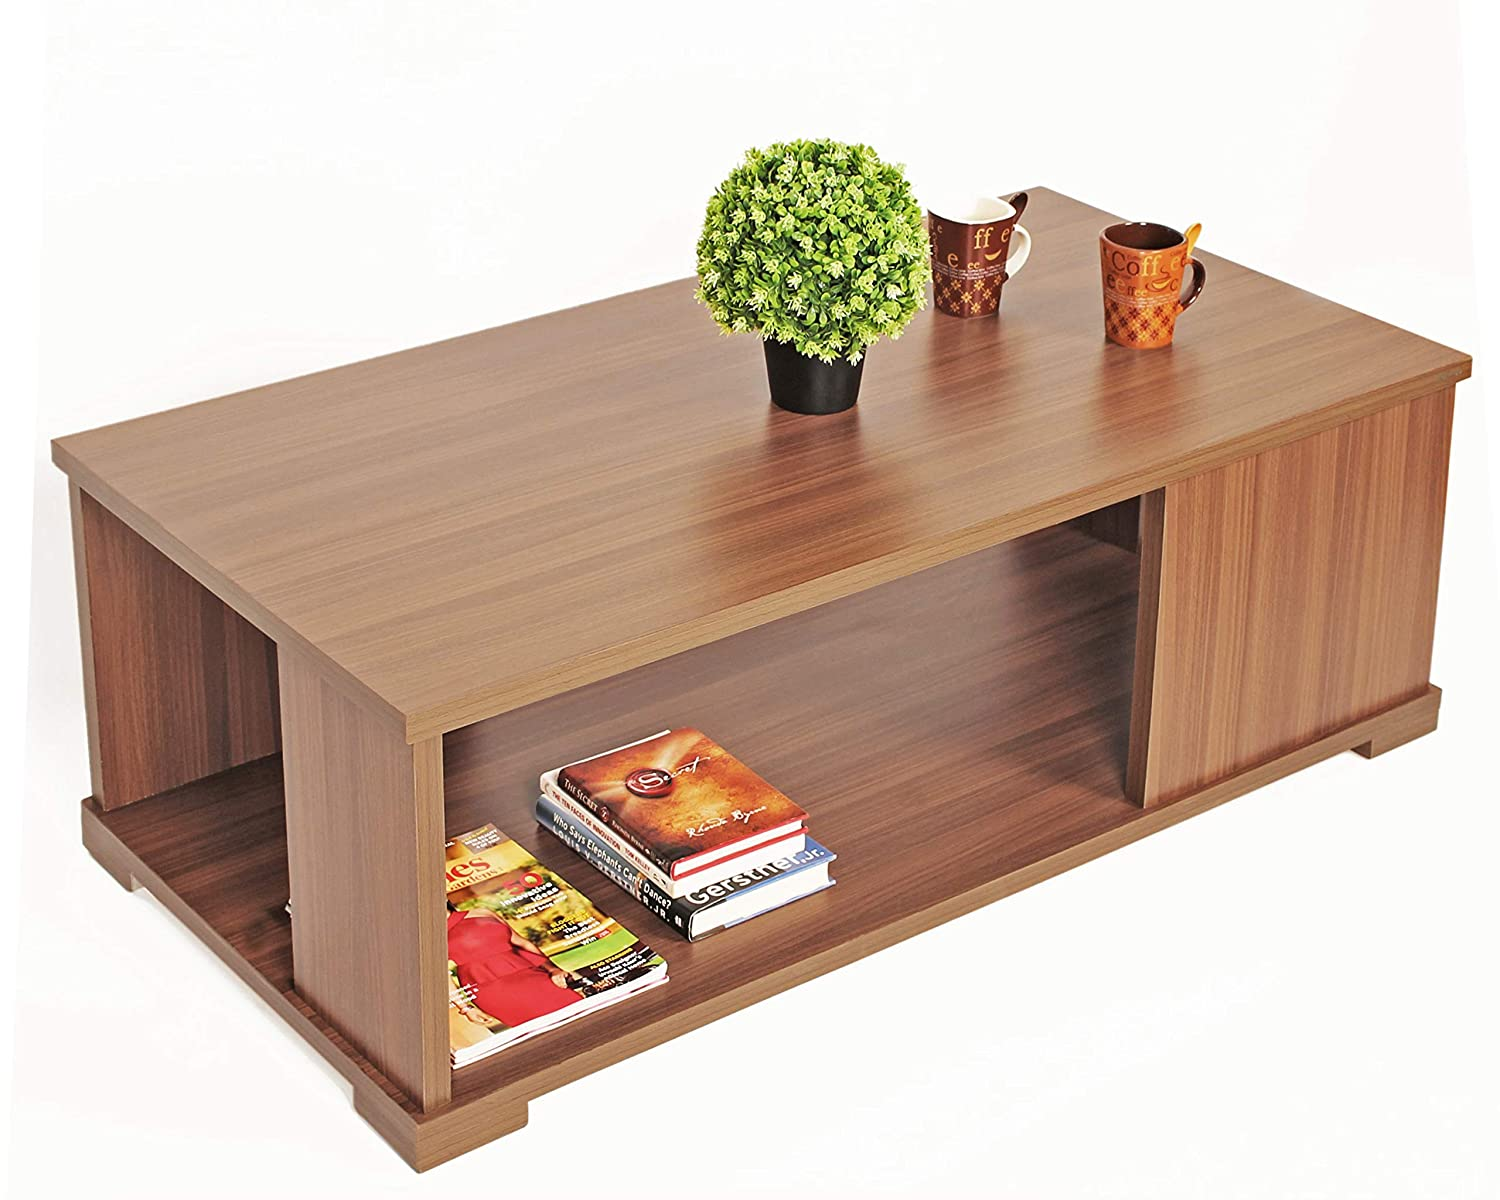 Bluewud Noel Coffee Table with Shelves